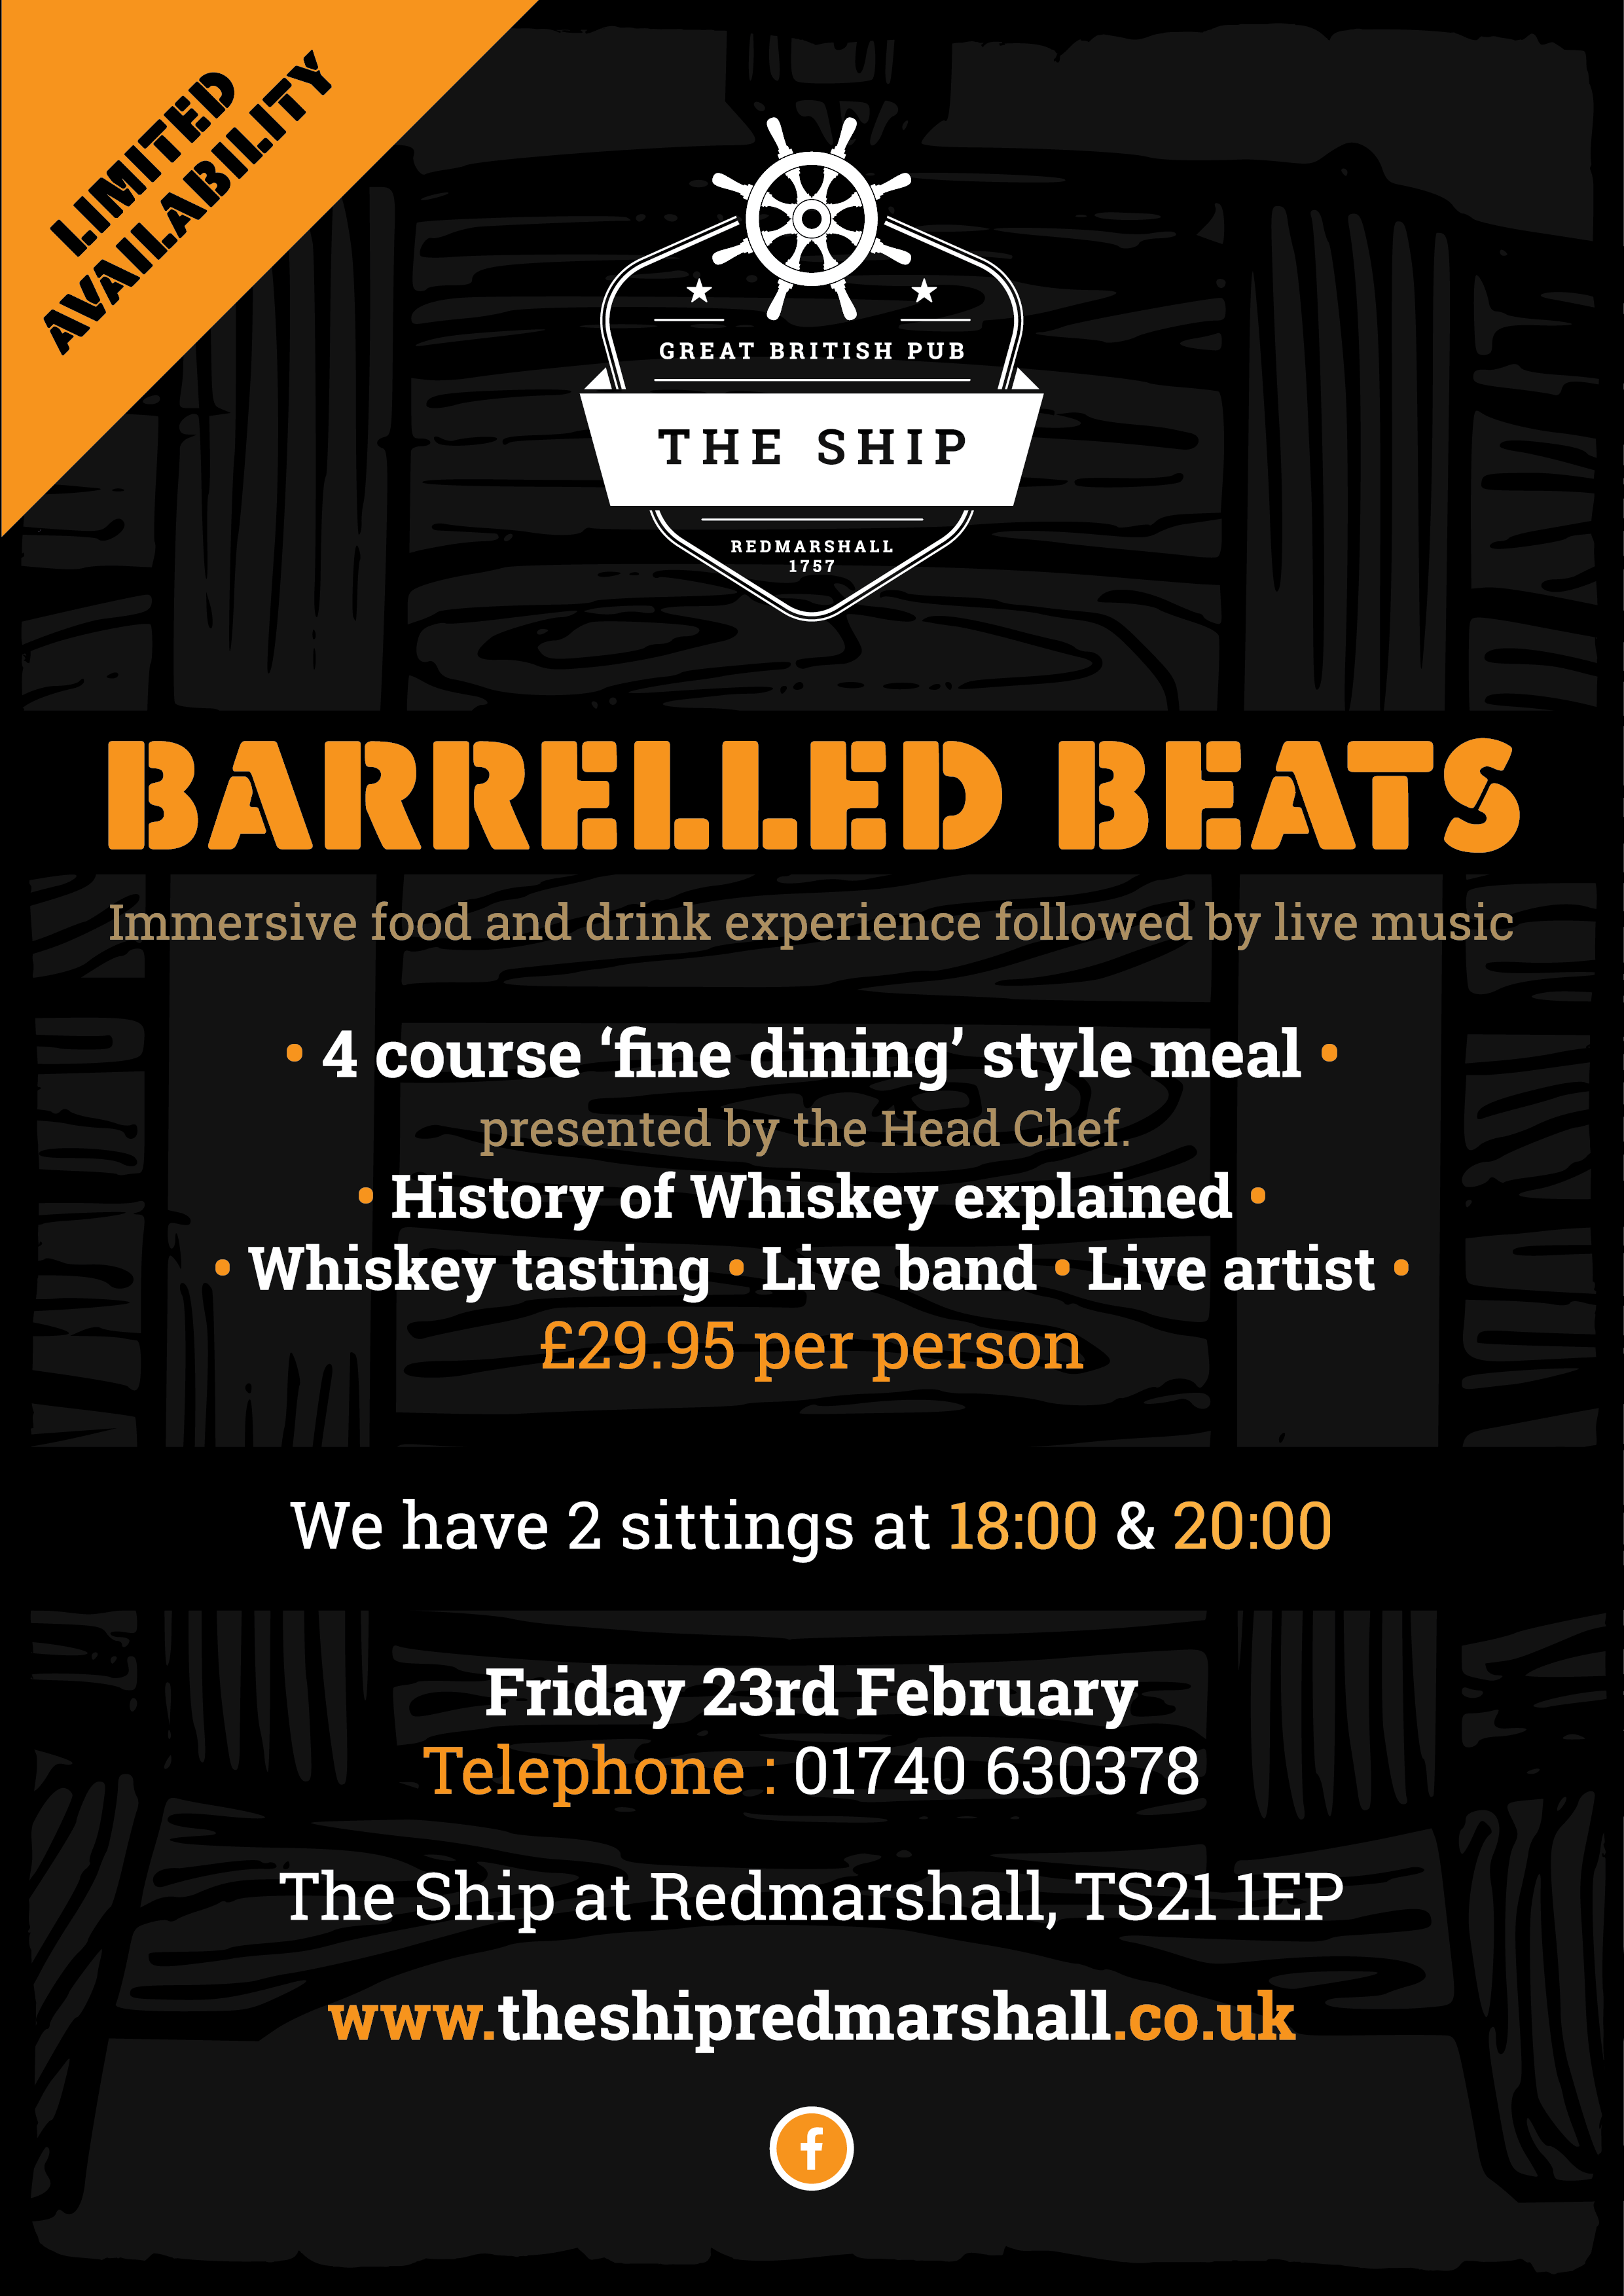 Barrelled Beats Whiskey Event at The Ship